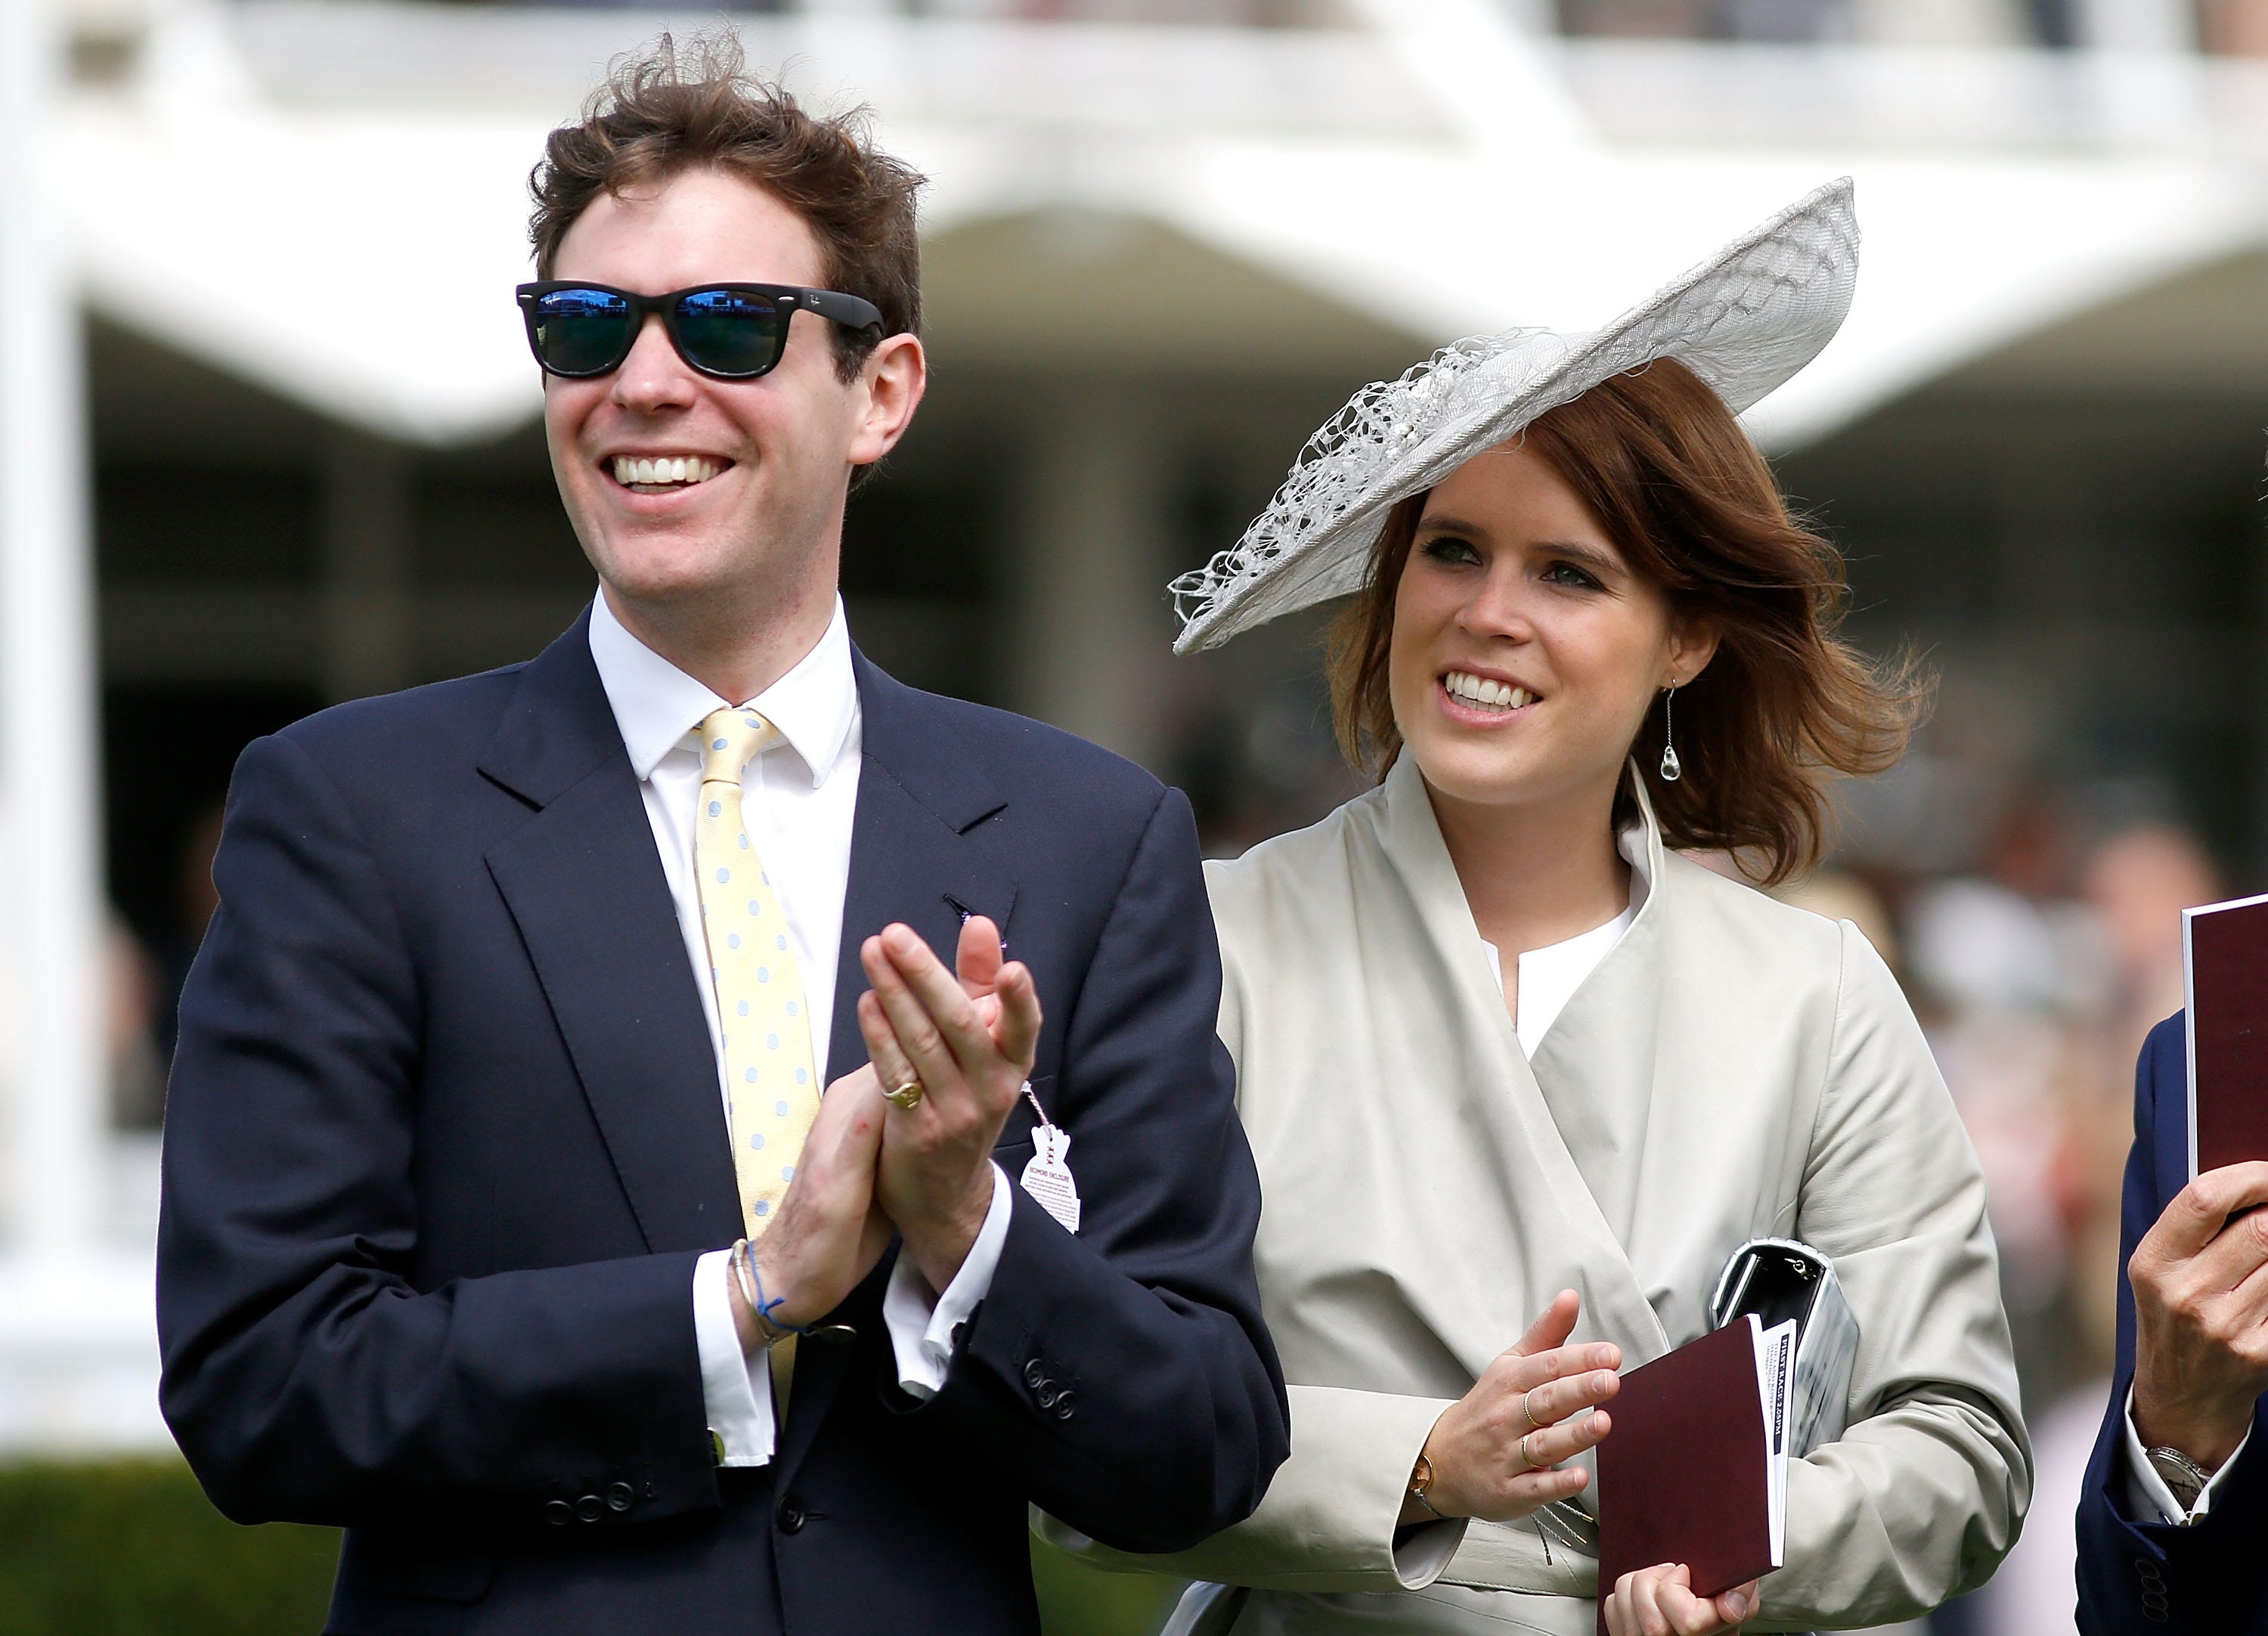 Princess Eugenie's groom: Who is Jack Brooksbank? And how does he know George Clooney?